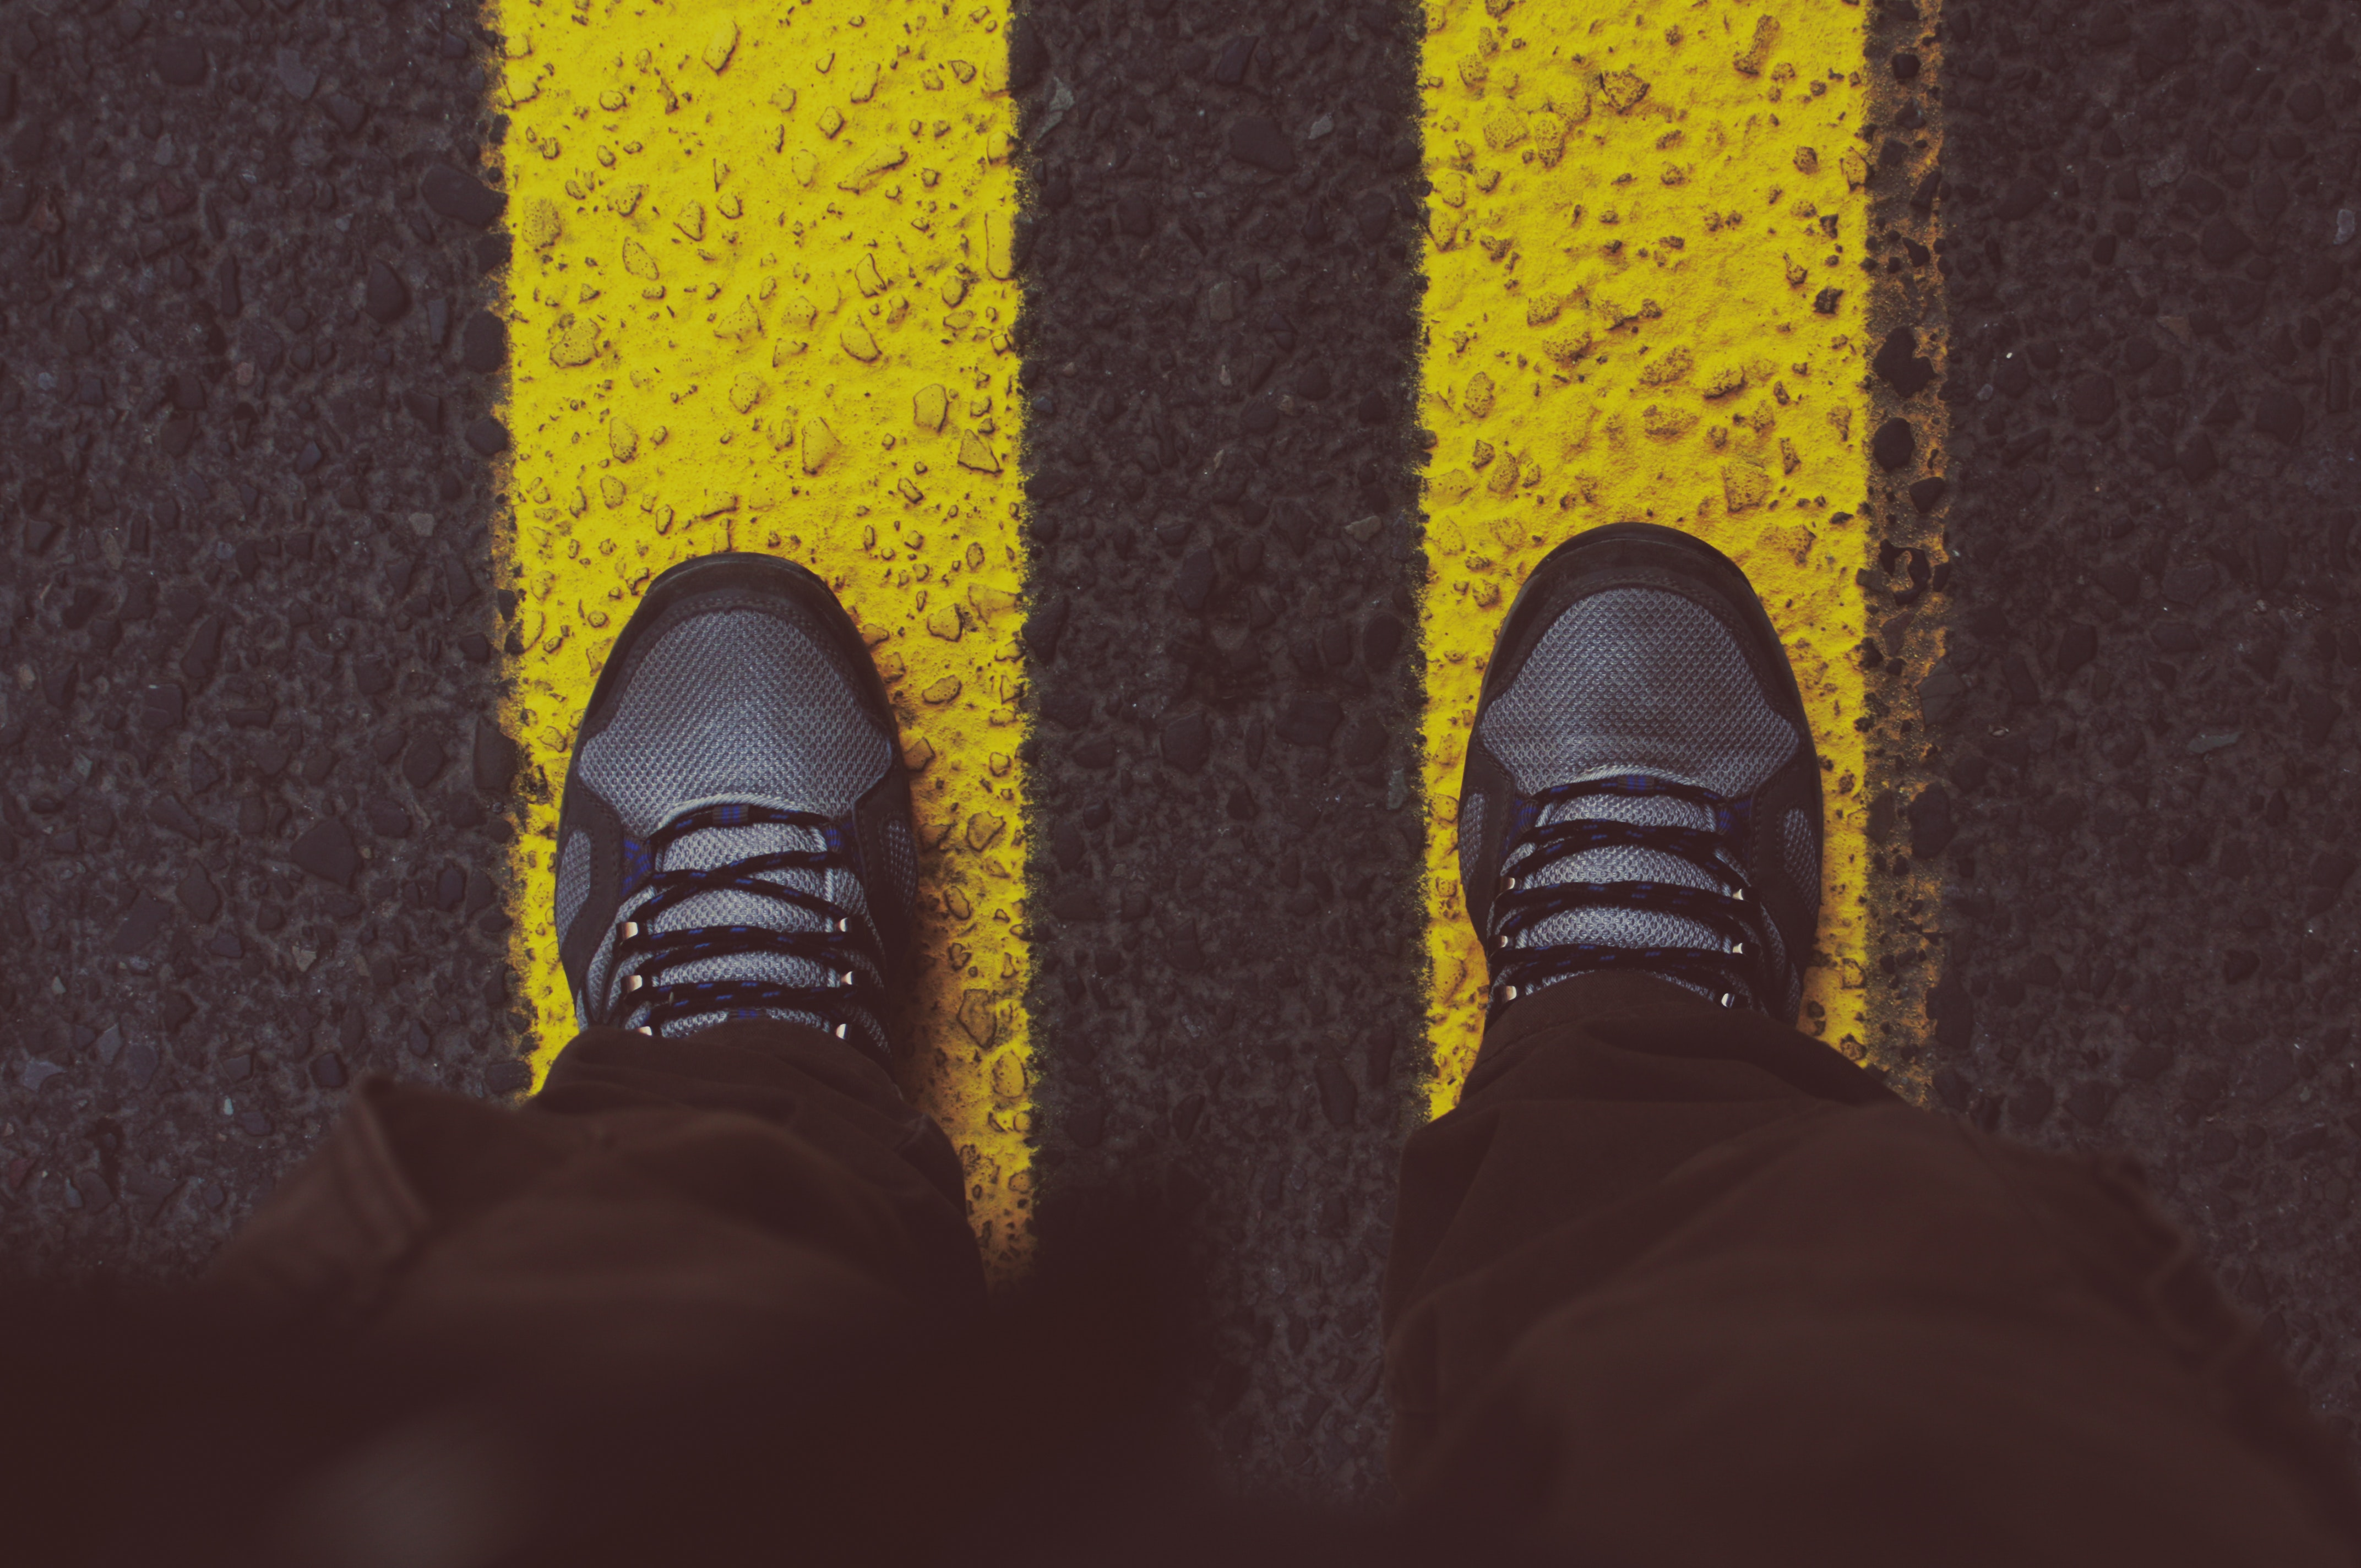 Person in Gray Sneakers Standing on Pedestrian Lane, Abstract, Outdoors, Wear, Street, HQ Photo